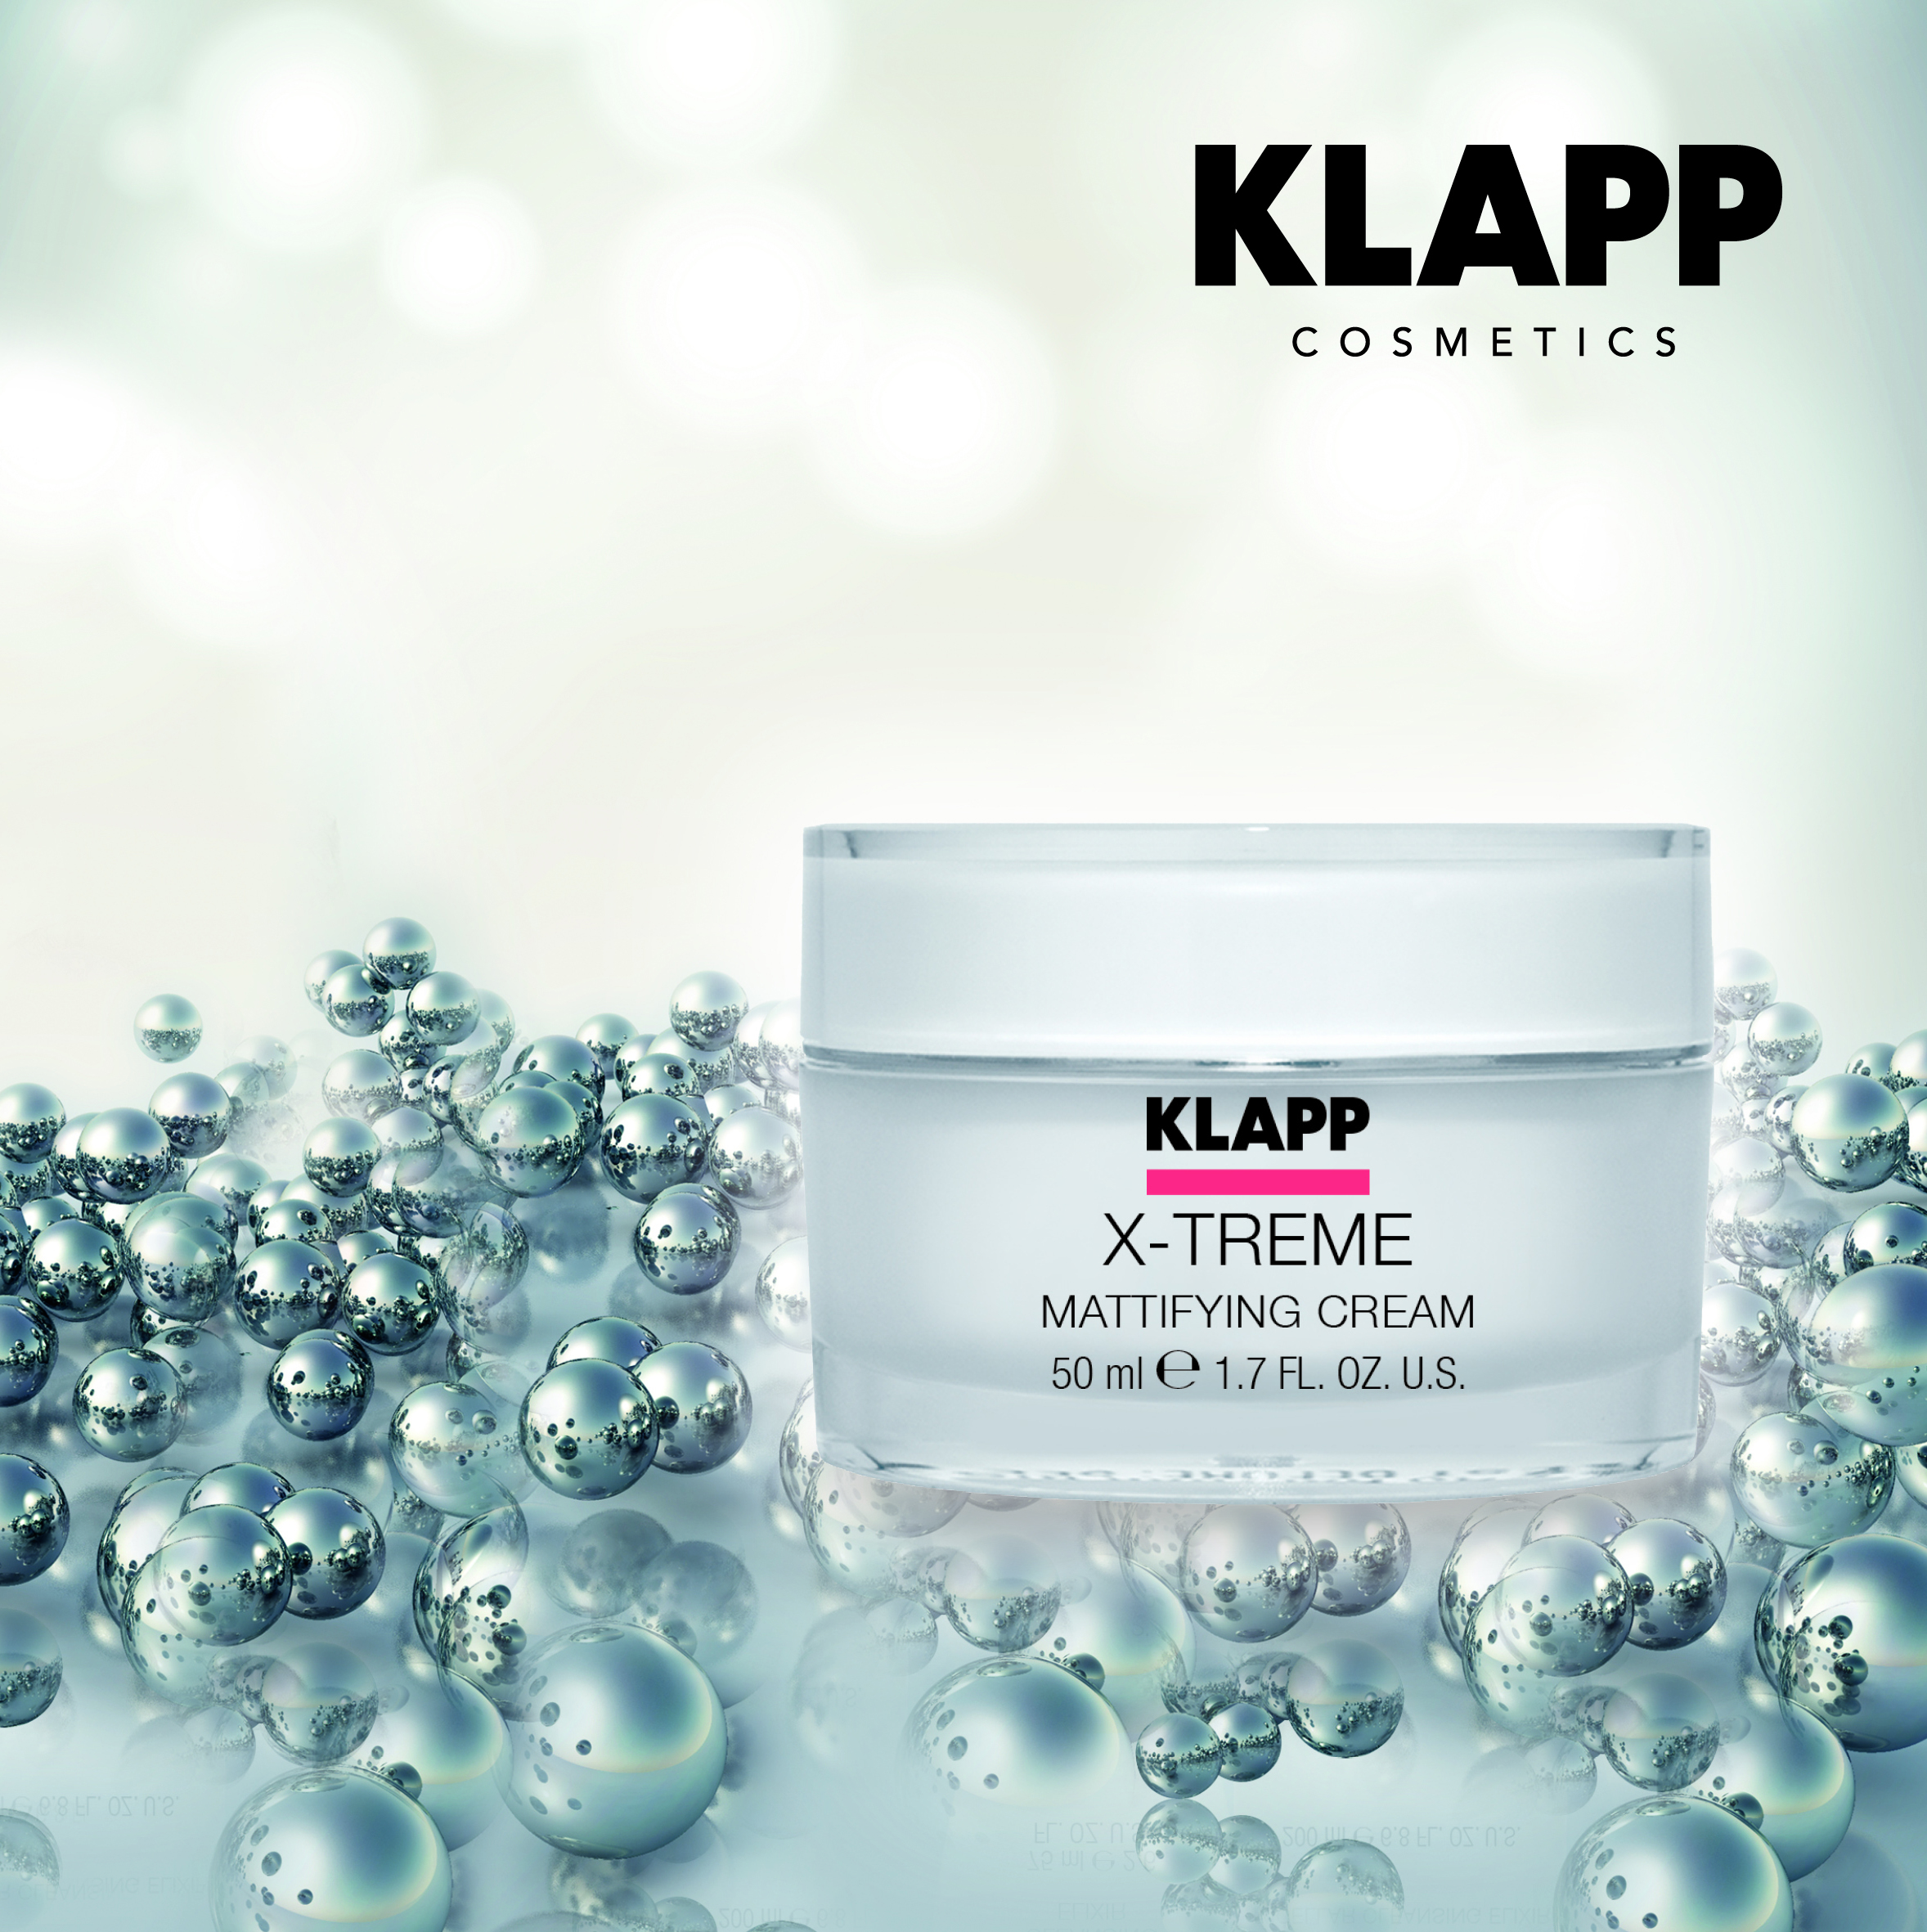 Klapp products image 1